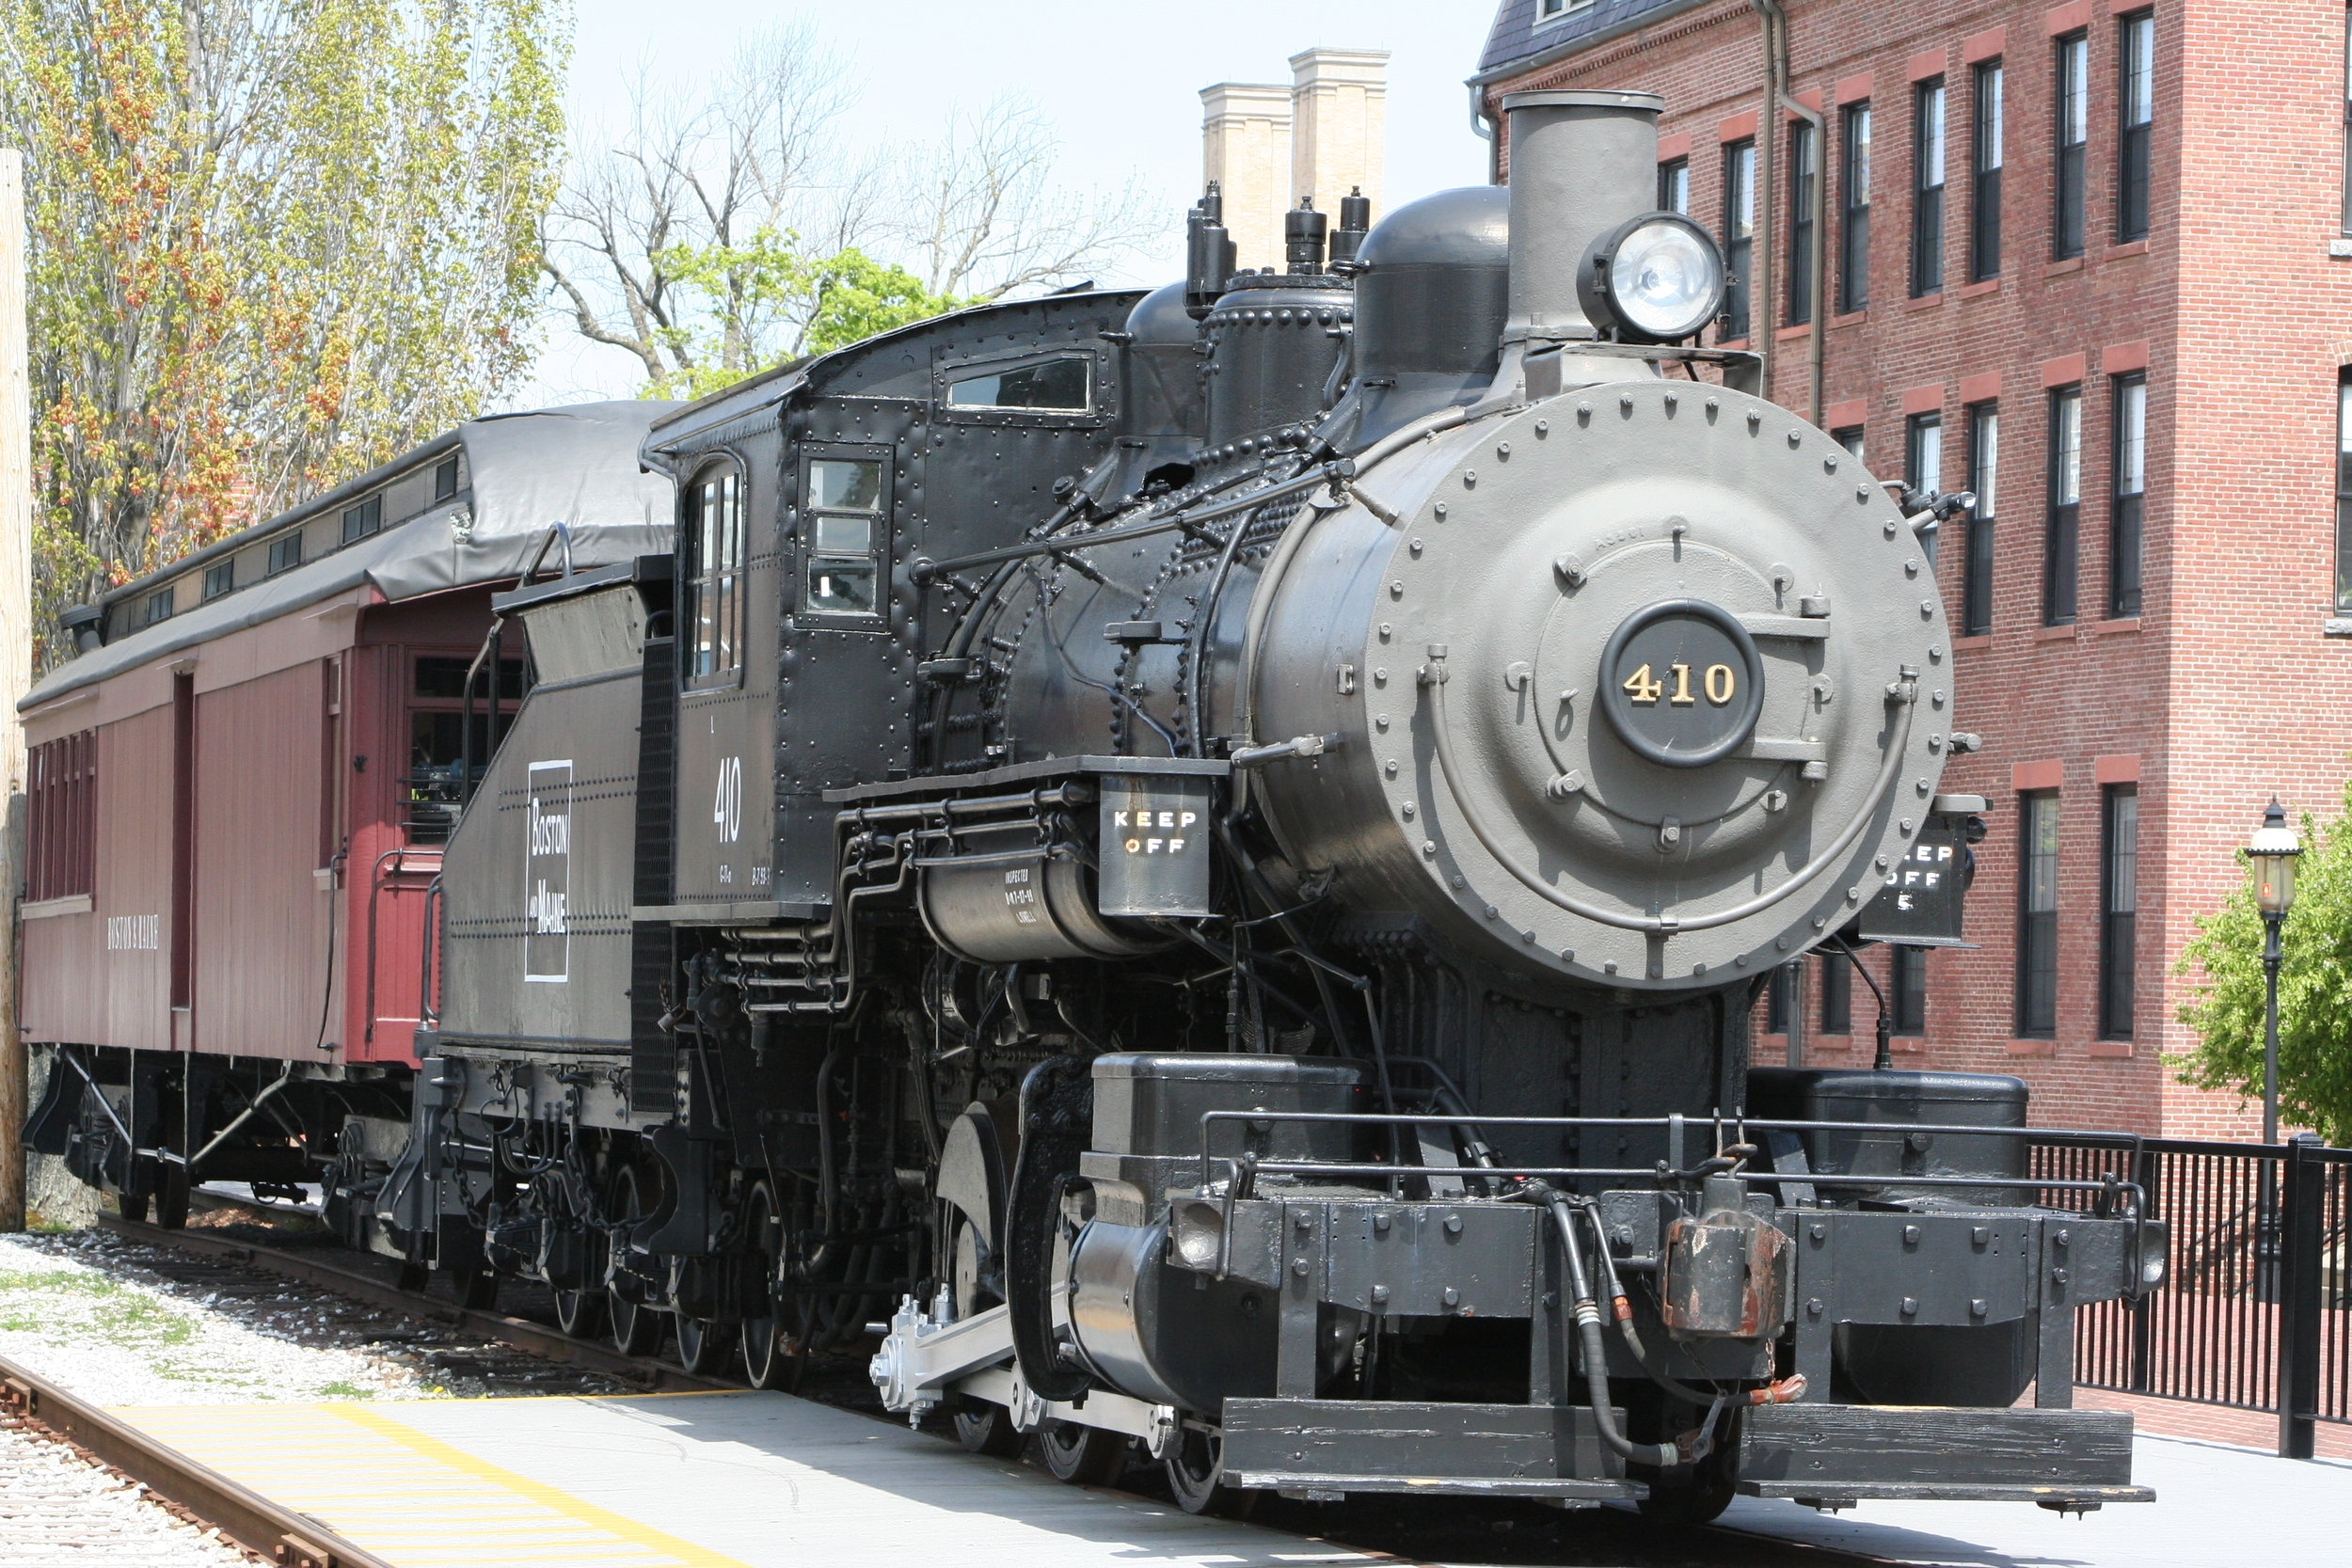 B&M No. 410 (0-6-0), Class G-10-a on display at Lowell, Massachusetts, April 26, 2010